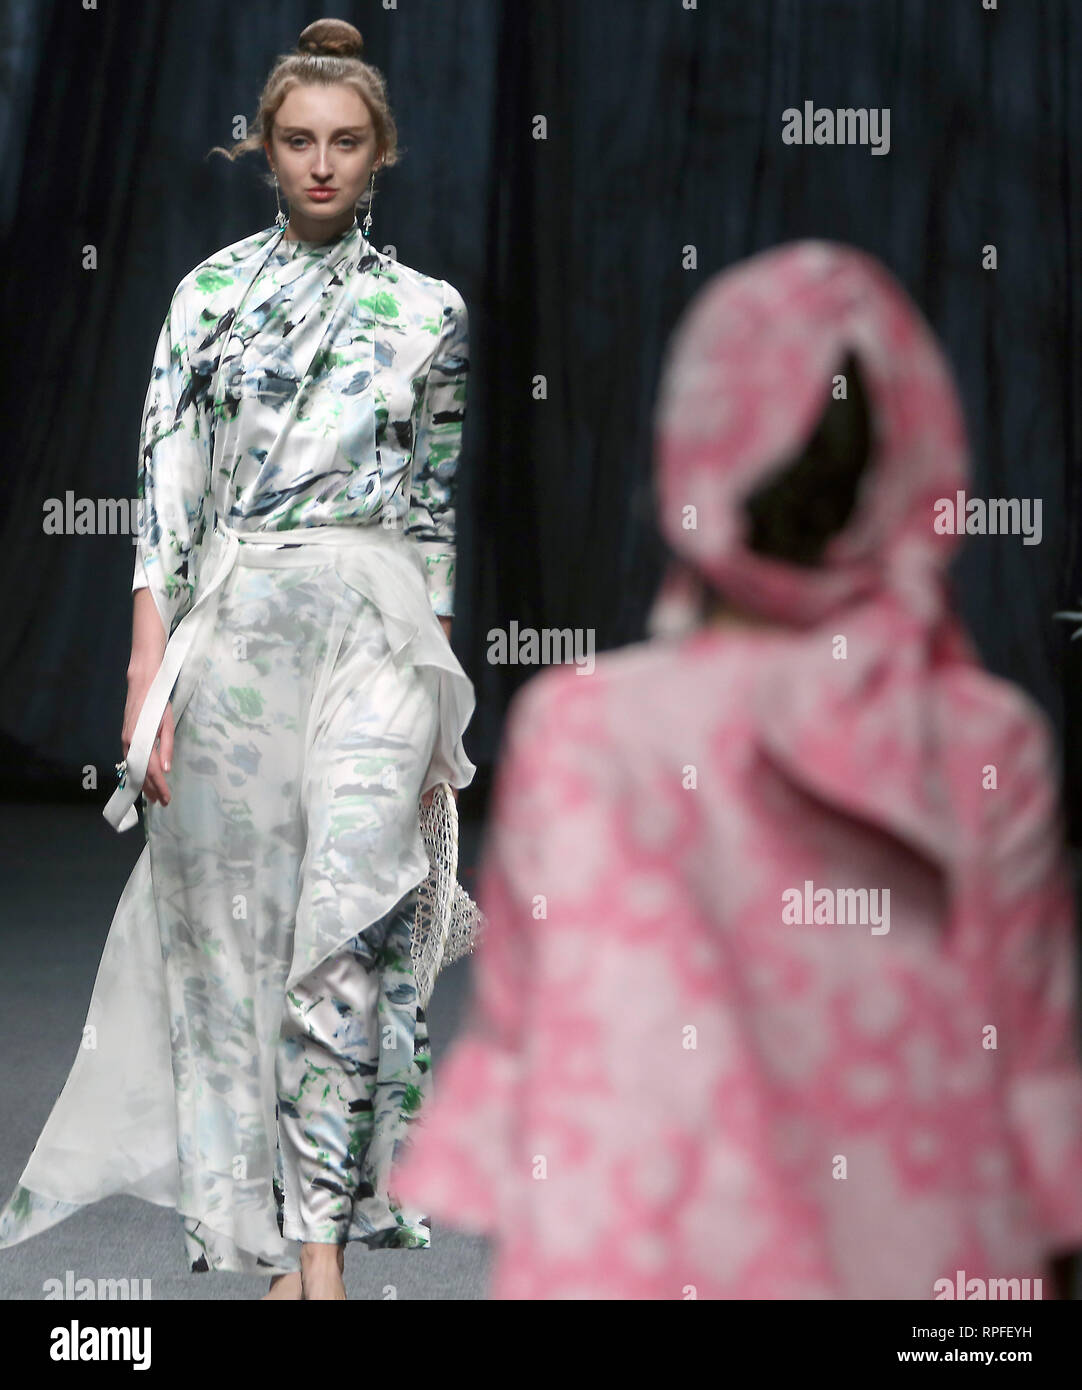 Beijing, China  1st Apr, 2018  Models wear clothing by